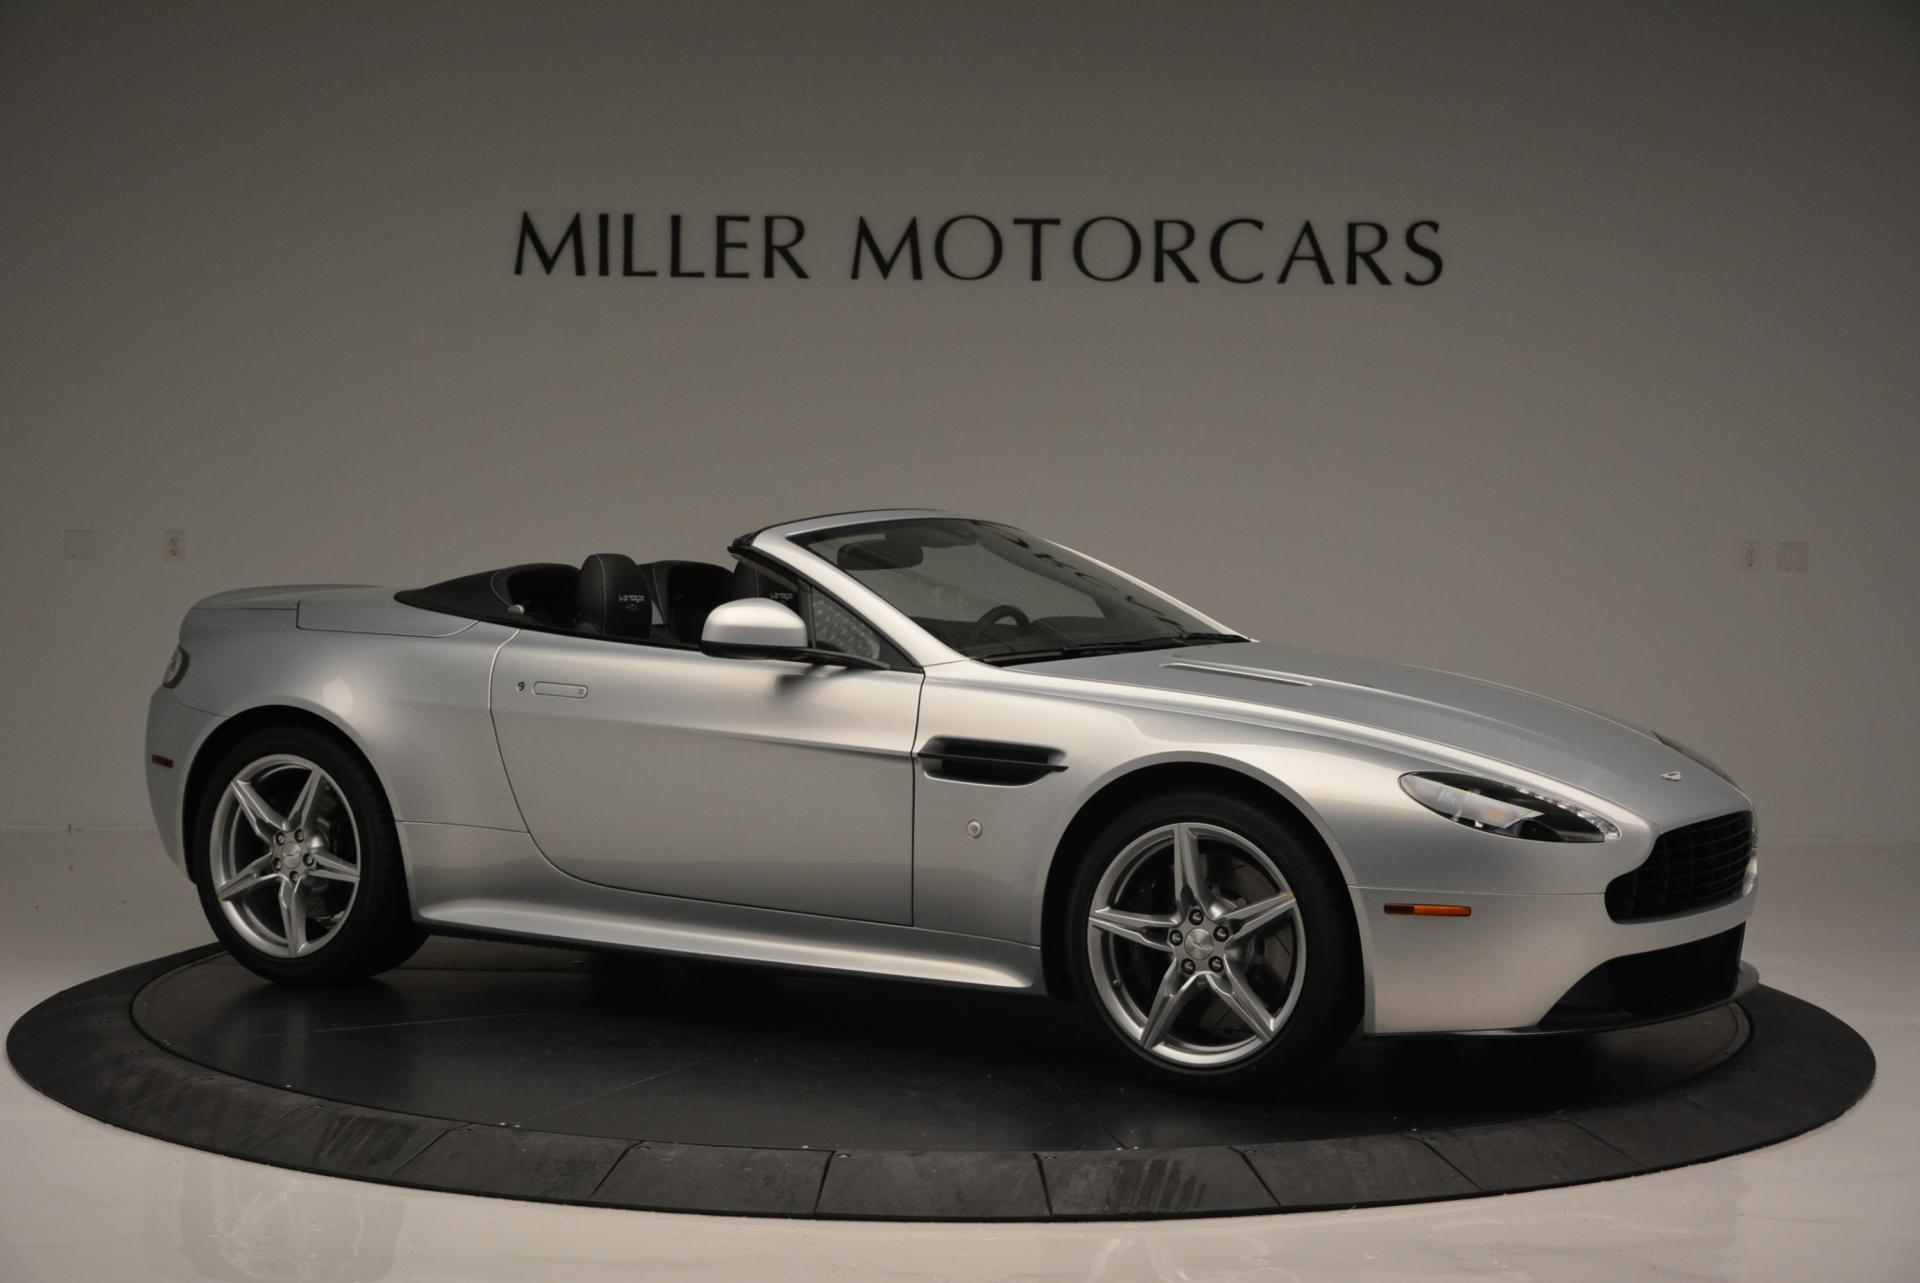 New 2016 Aston Martin V8 Vantage GTS Roadster For Sale In Westport, CT 90_p10